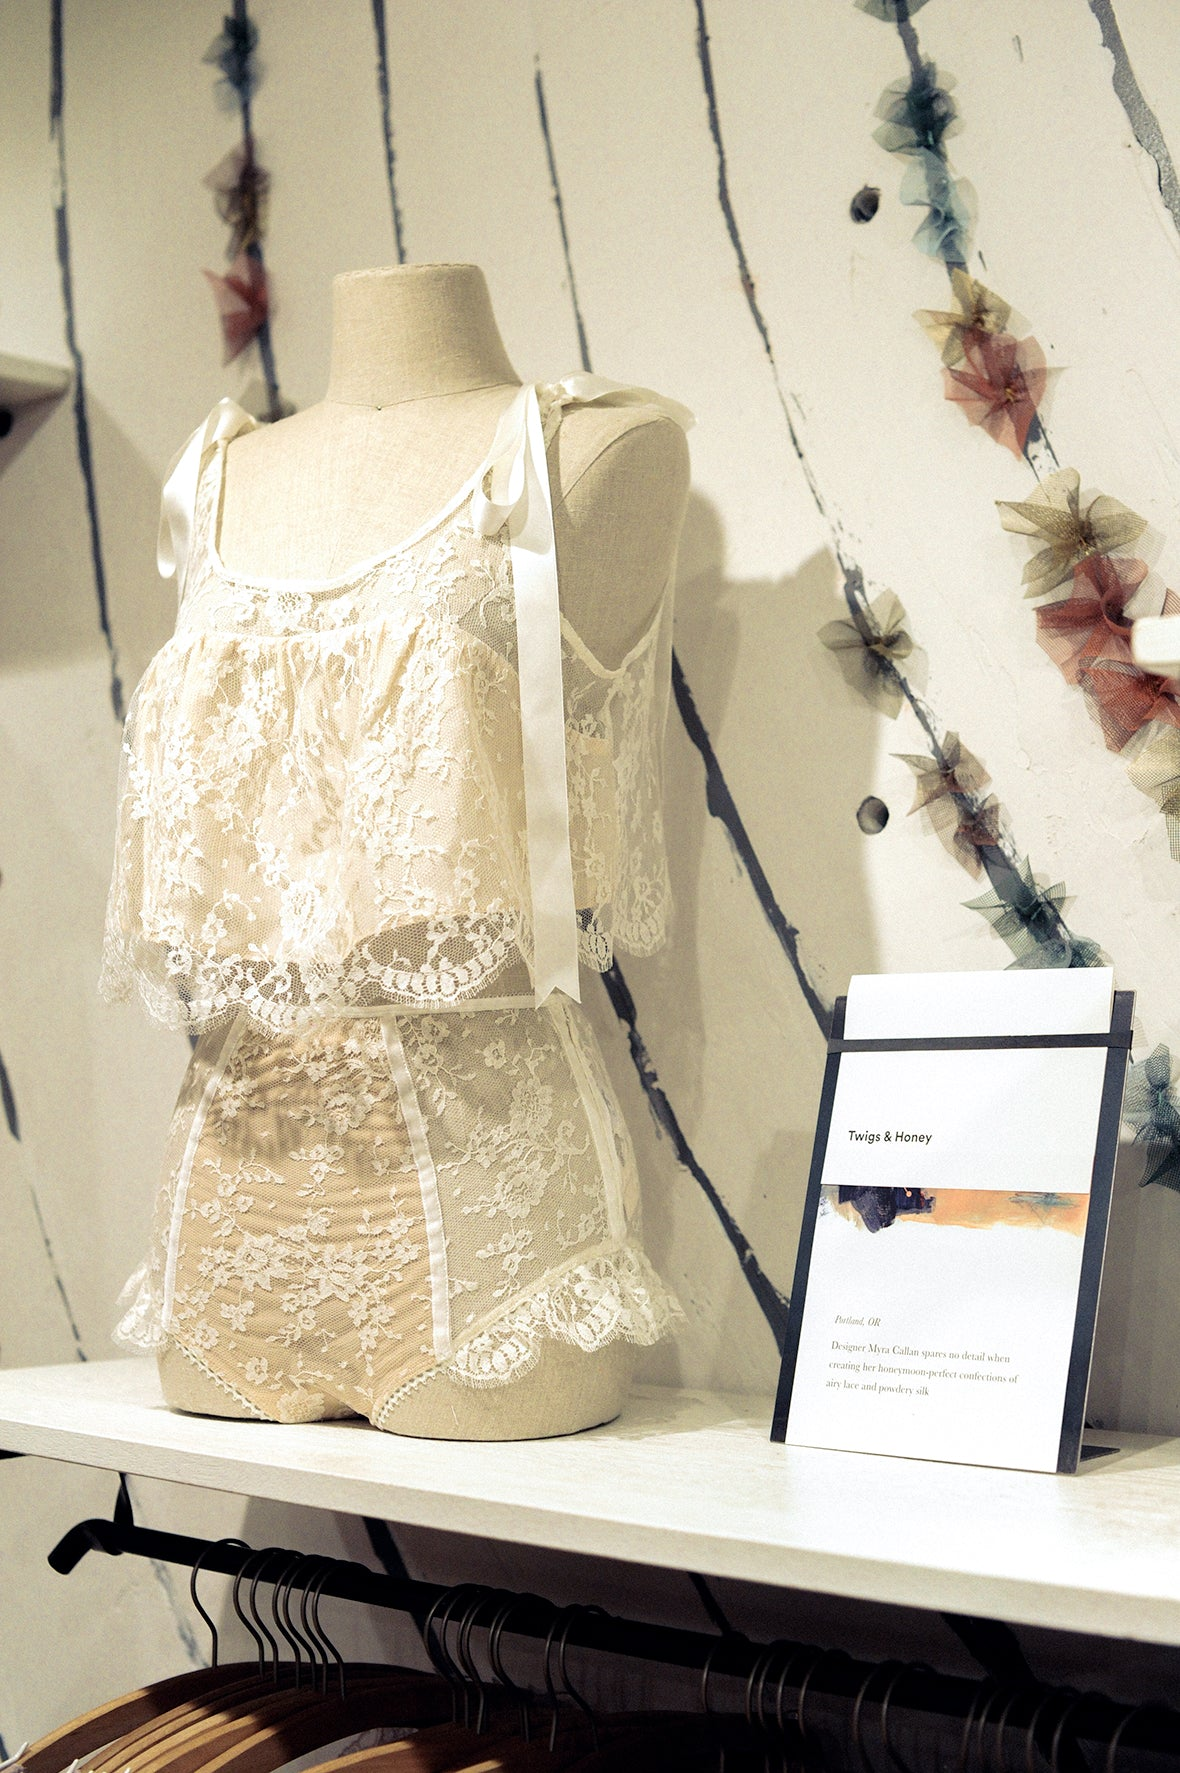 Twigs & Honey lingerie, Anthropologie, Bridal lingerie set, Portland Anthropologie, remodel